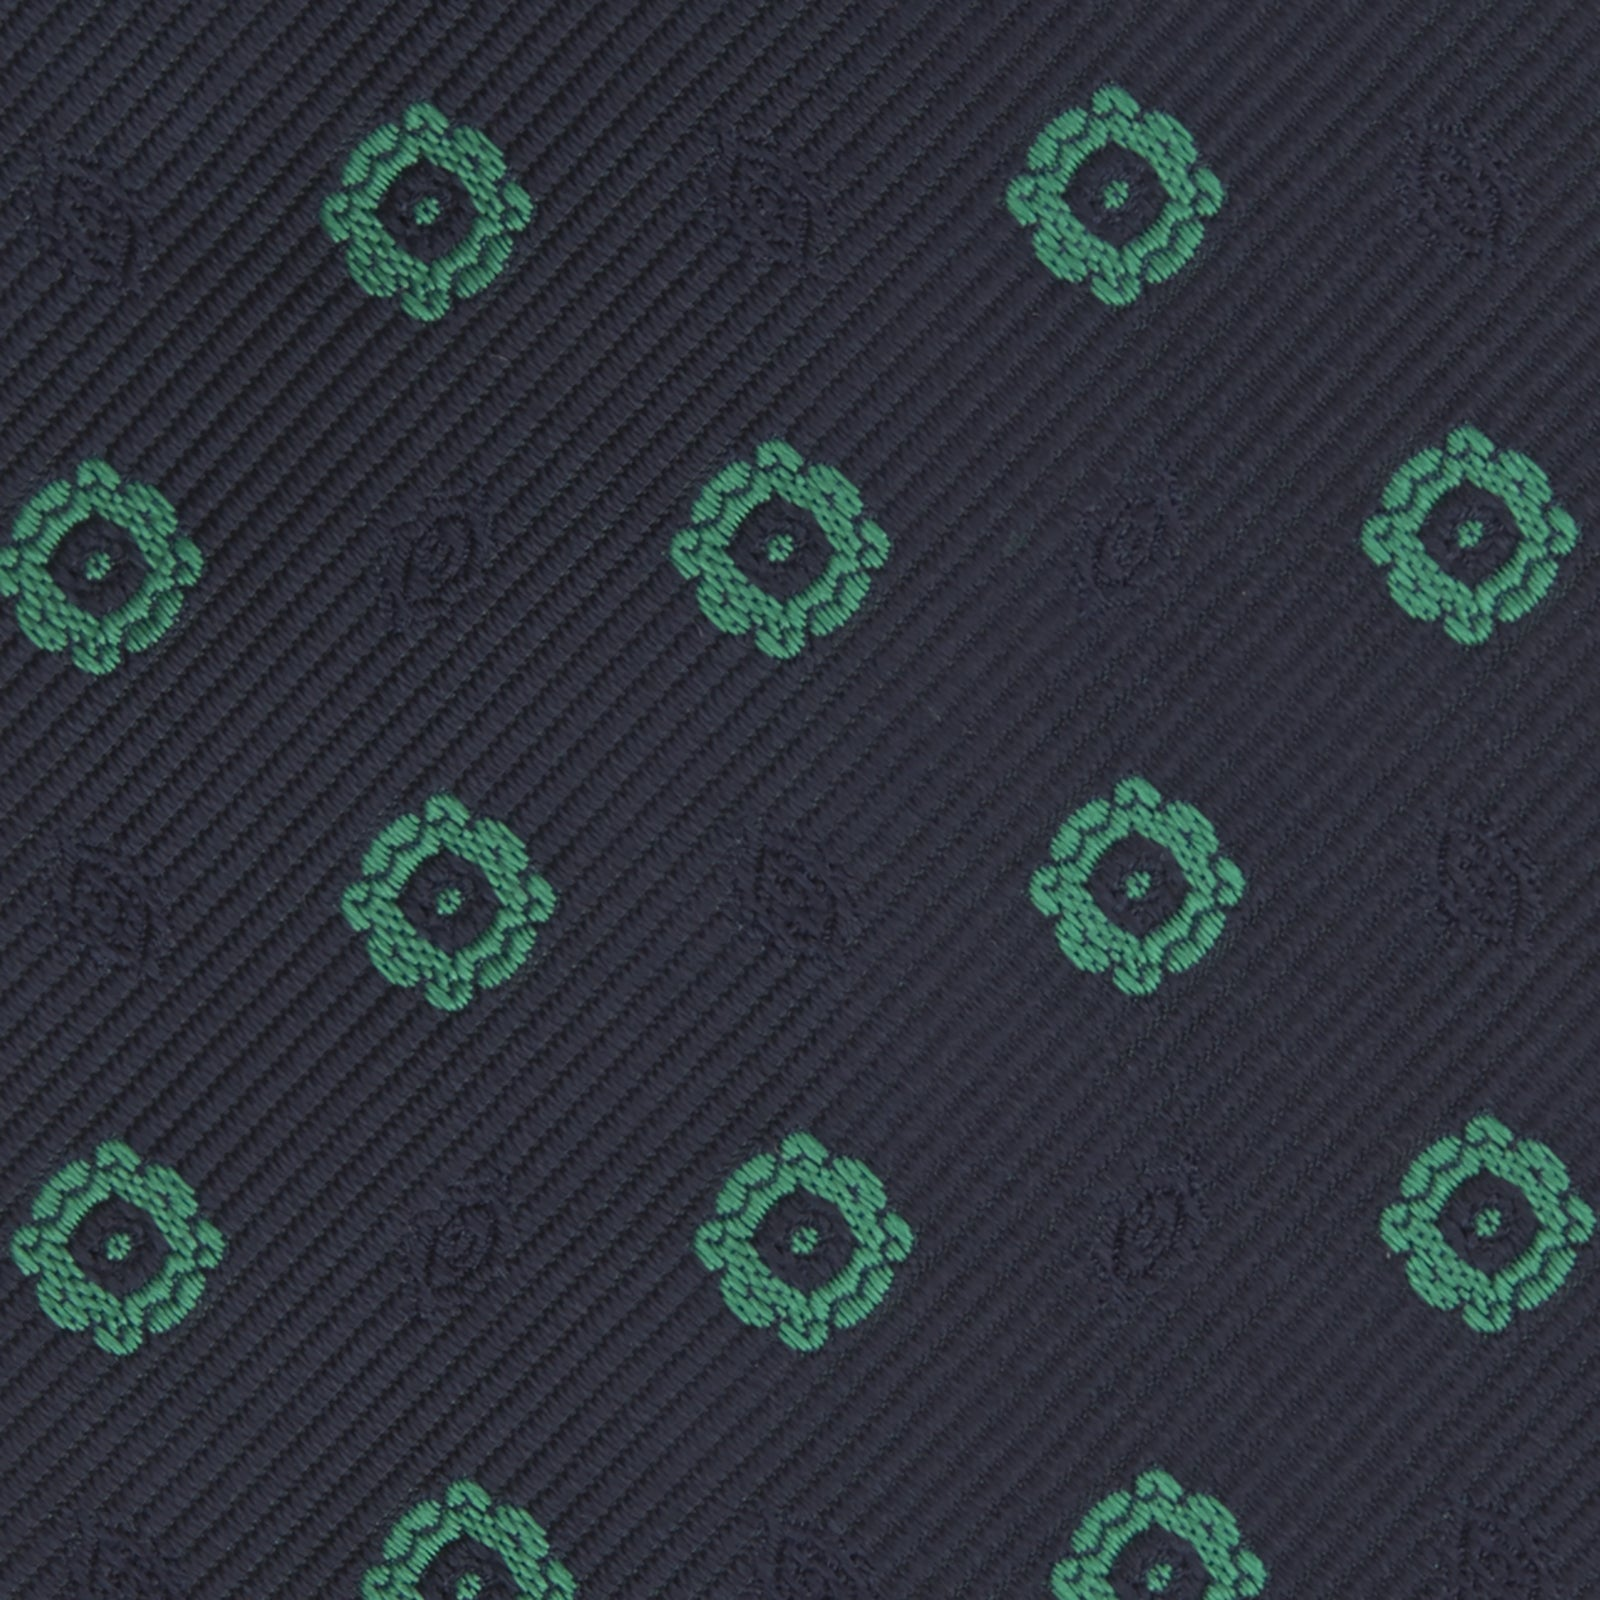 Navy and Green Emblem Spot Silk Tie